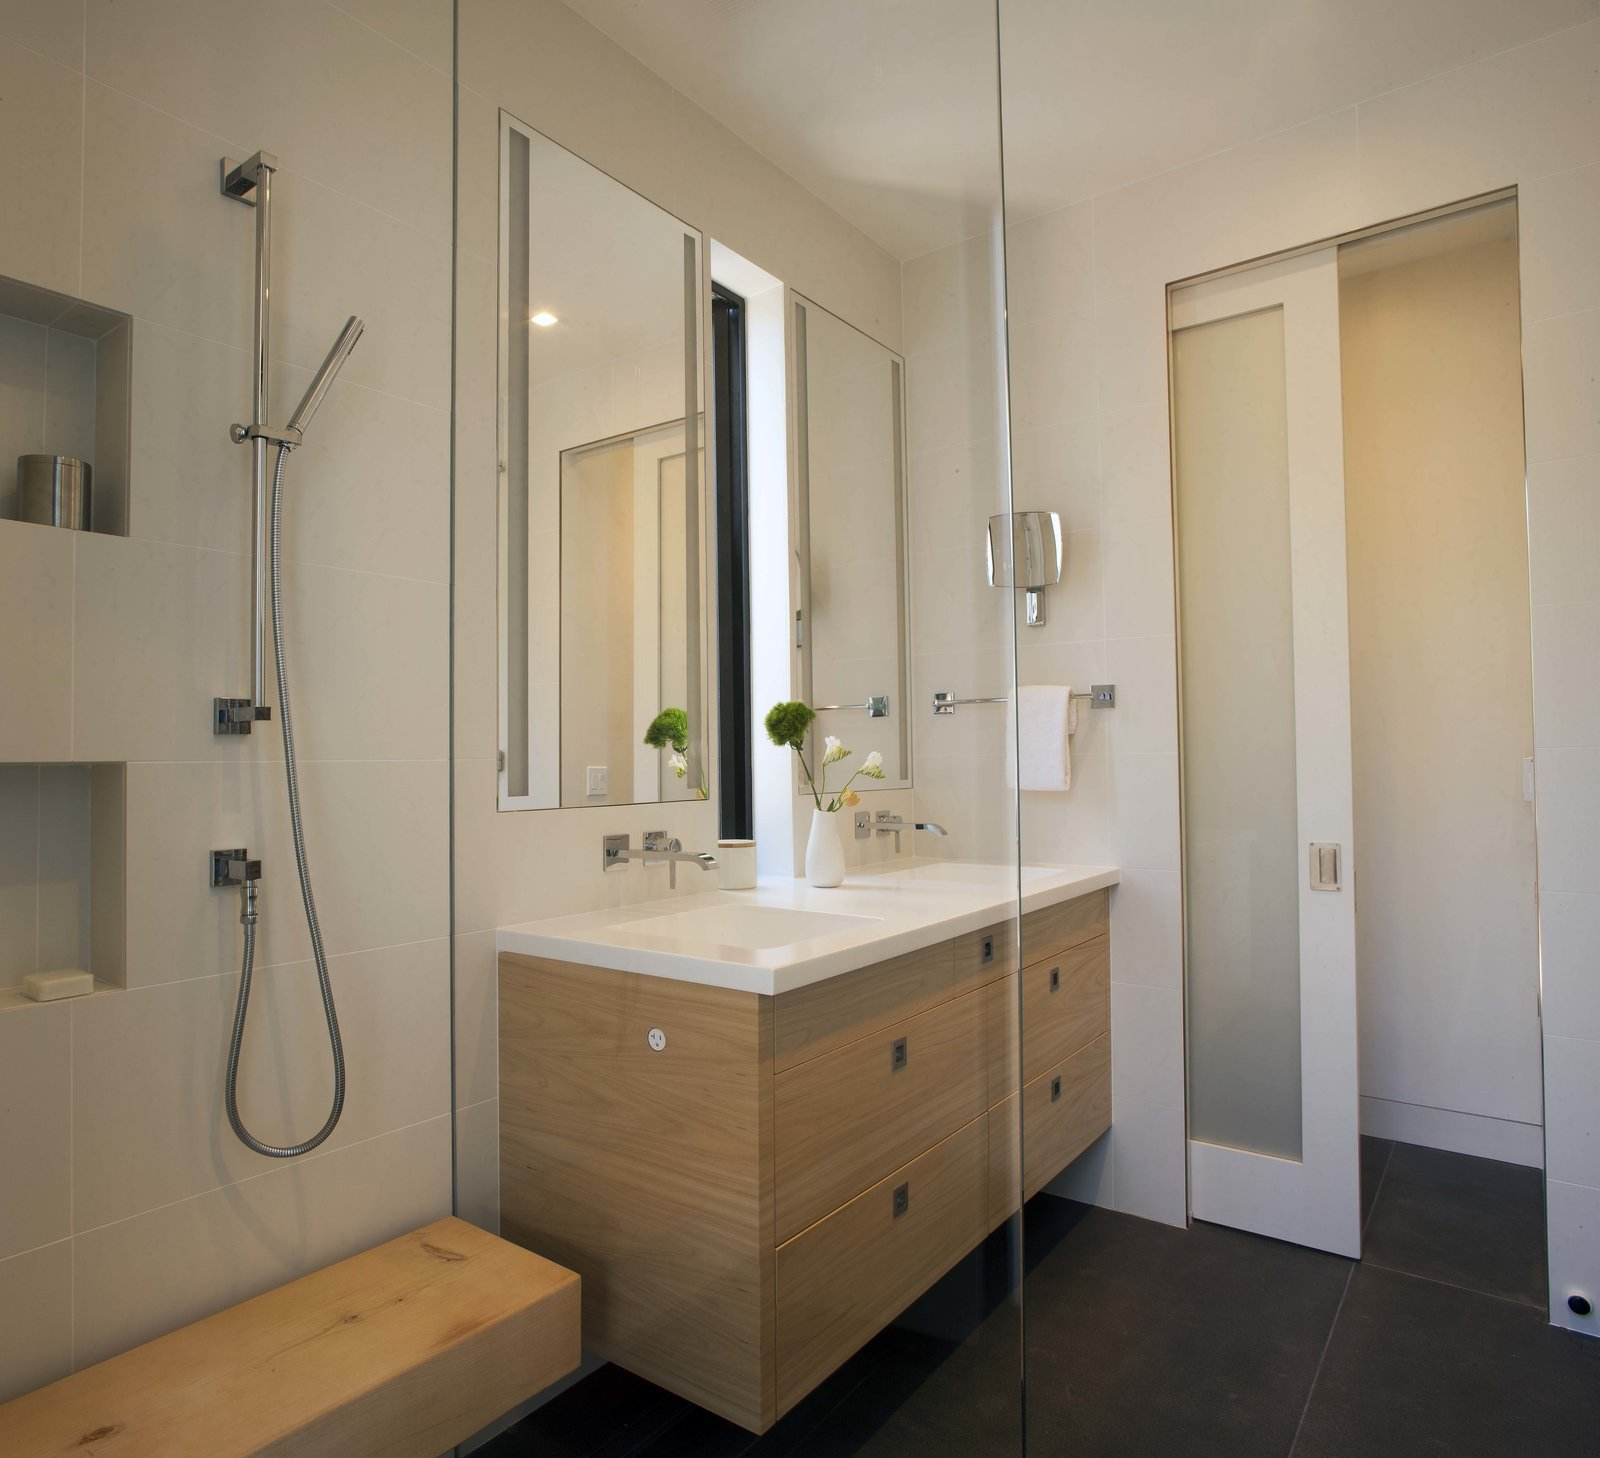 Master Bathroom with a walk-in shower  Beverley Master Bedroom Suite Addition by Kathryn A. Rogers